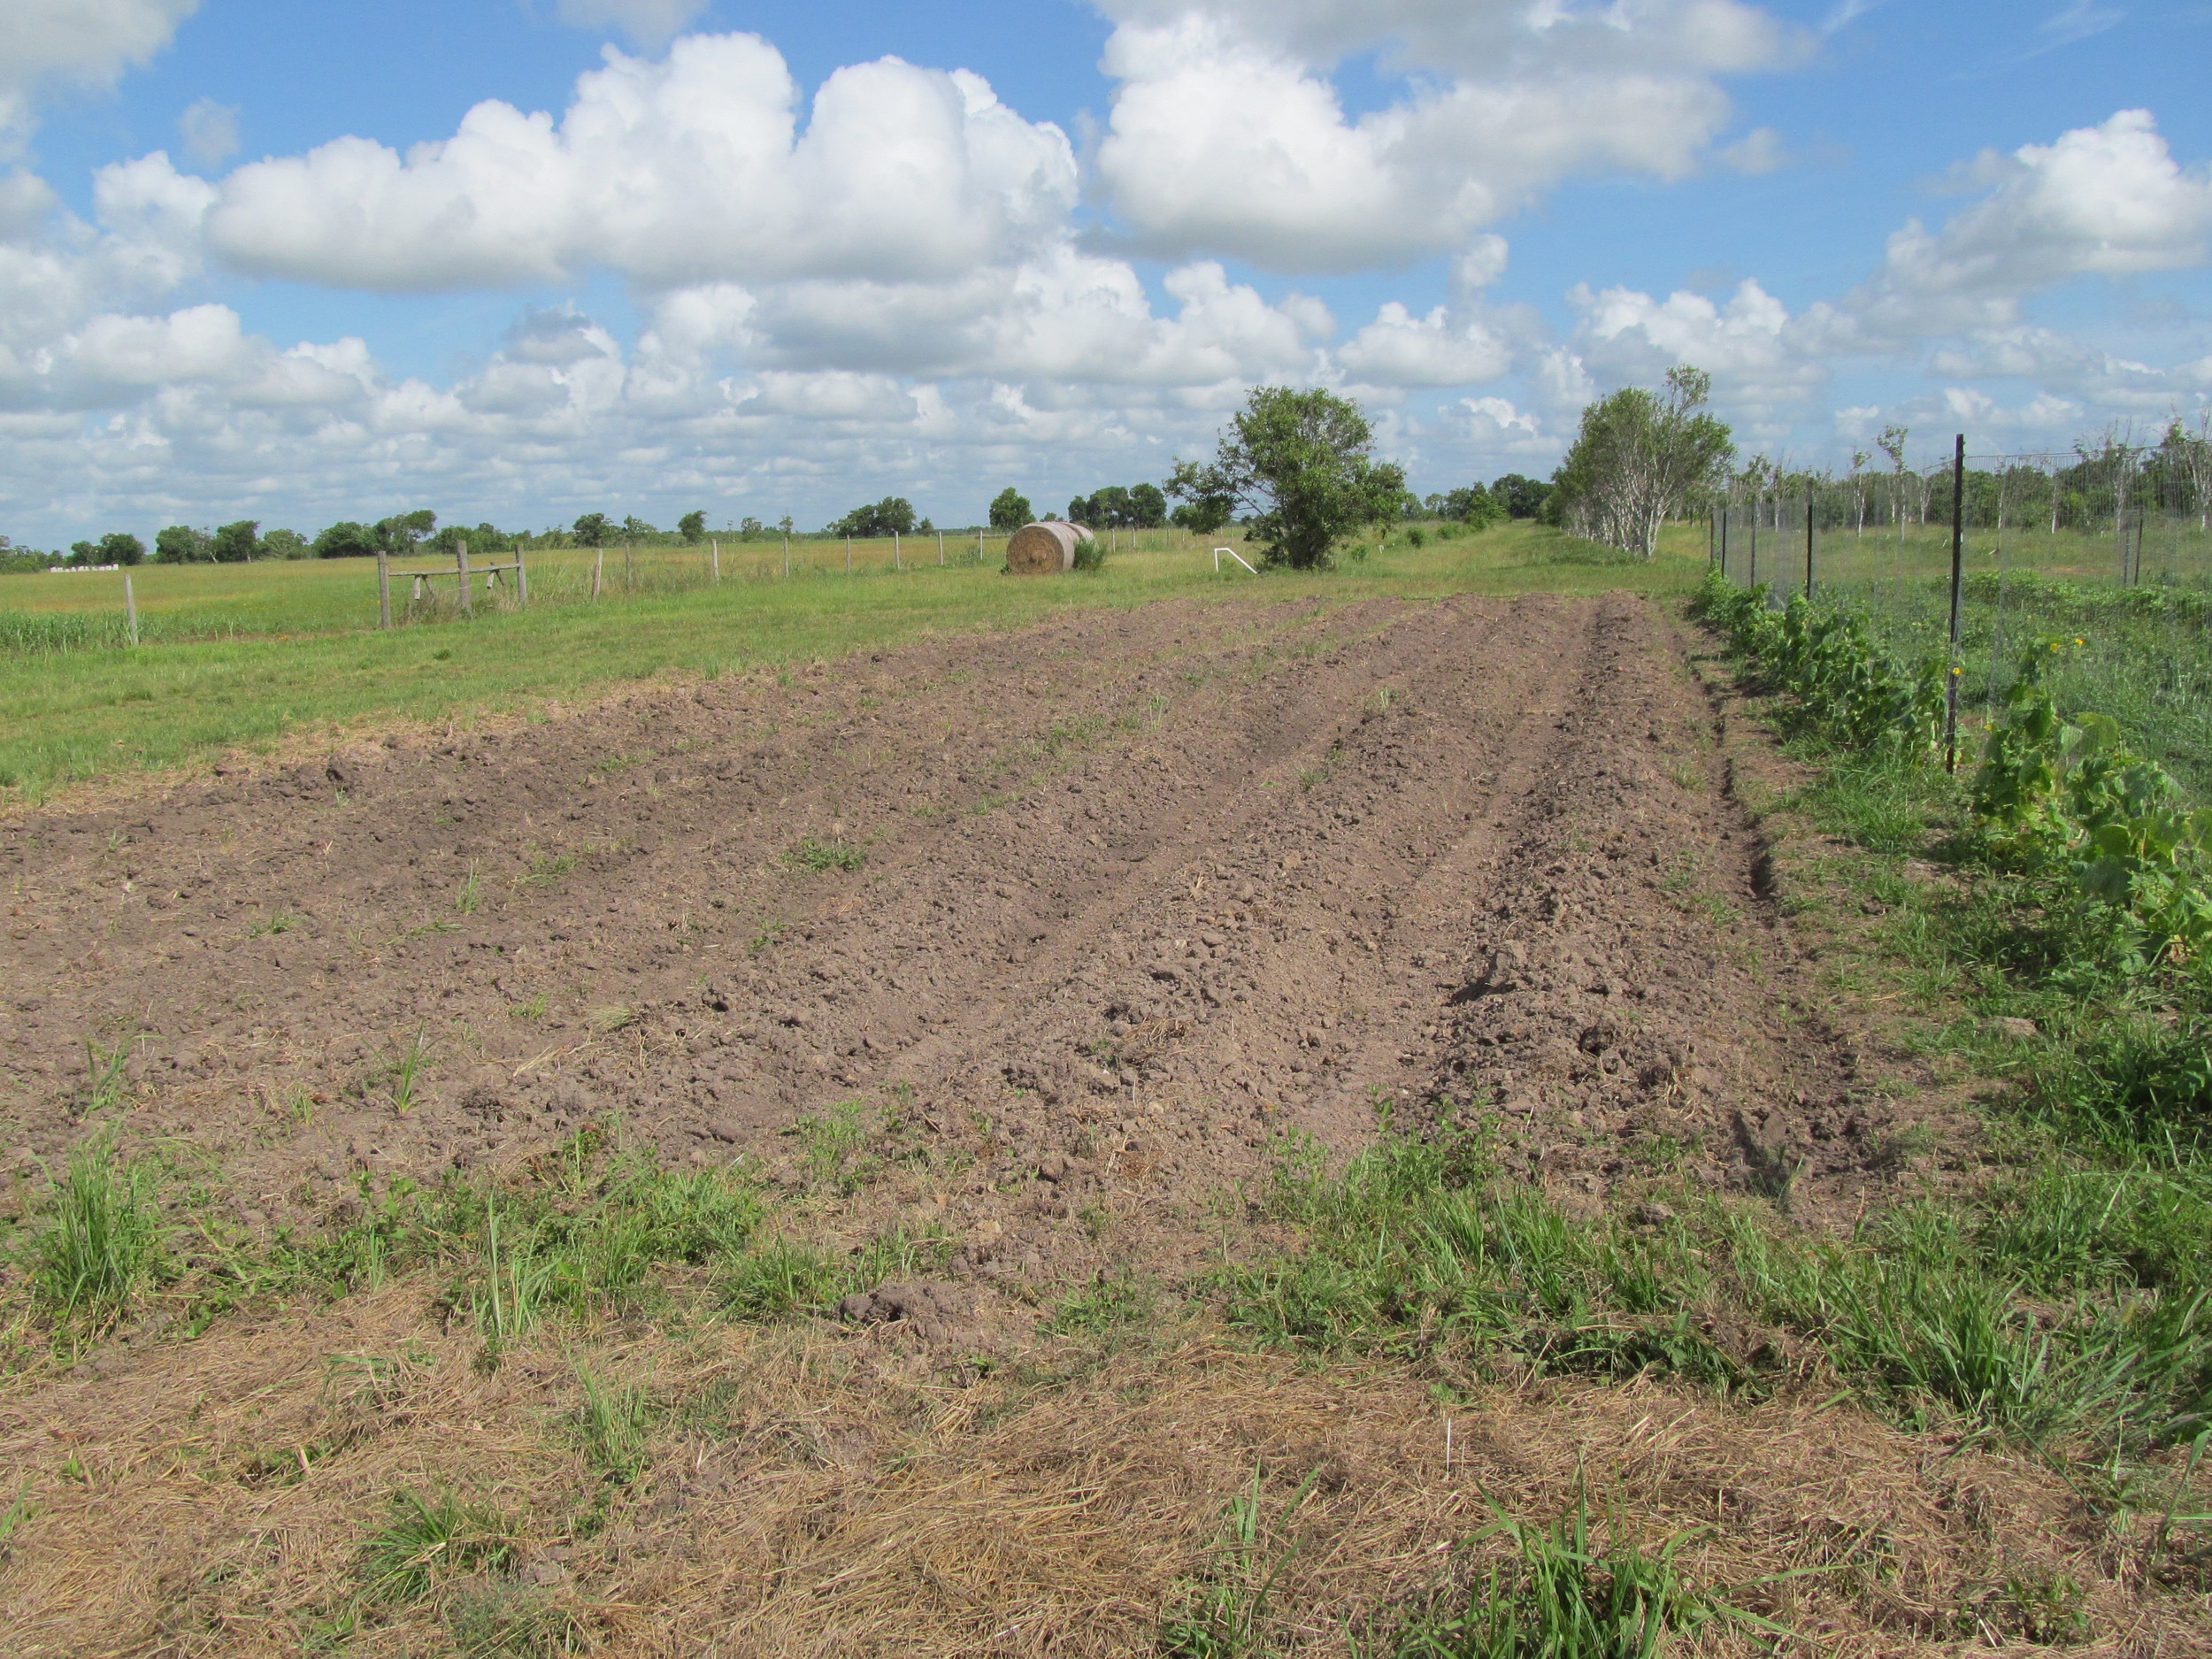 The now-empty potato field, awaiting its sprinkles of buckwheat.